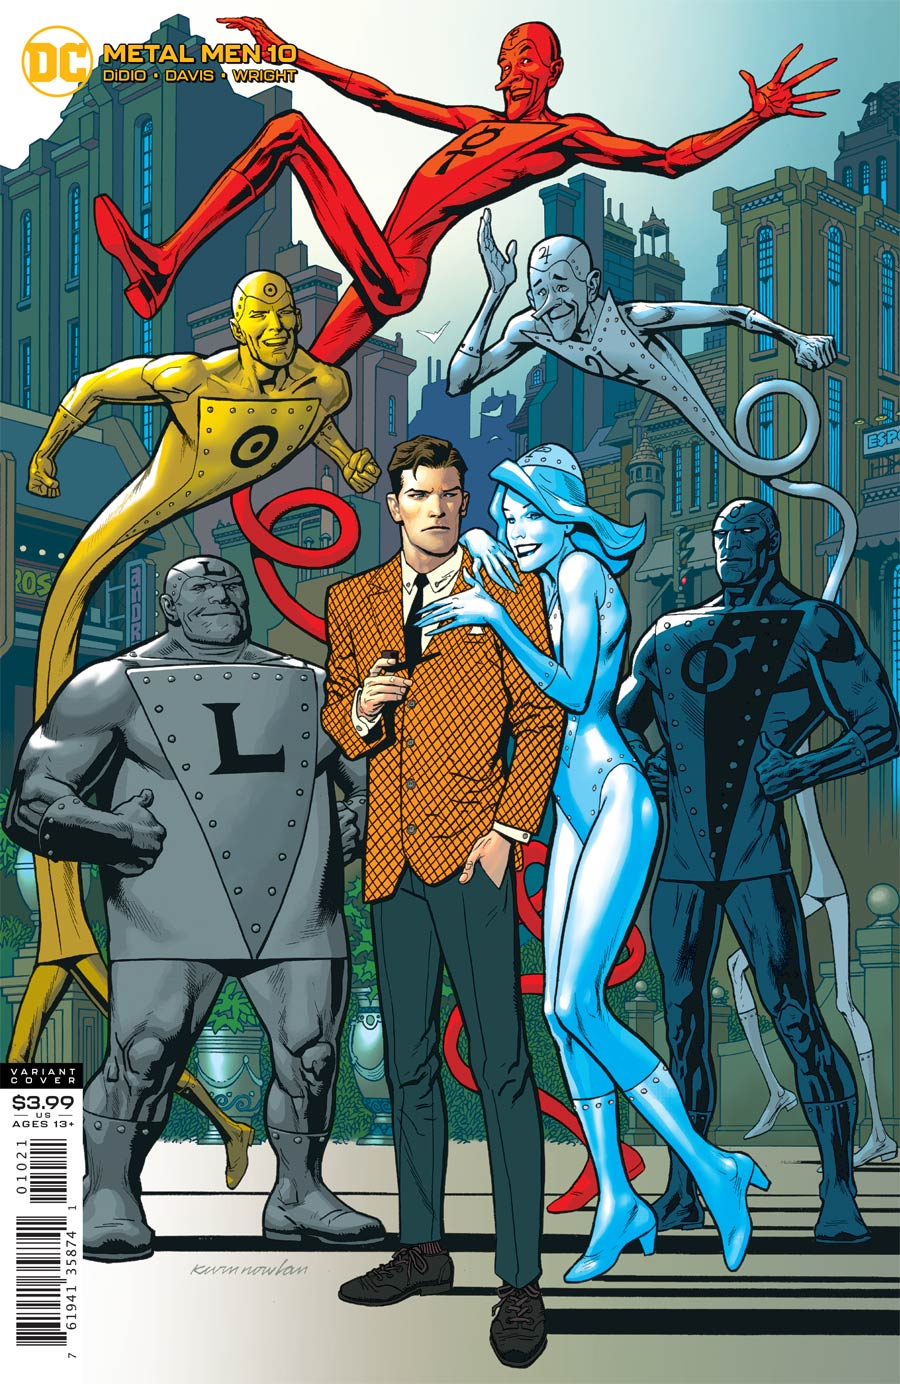 Metal Men Vol 4 #10 Cover B Variant Kevin Nowlan Cover